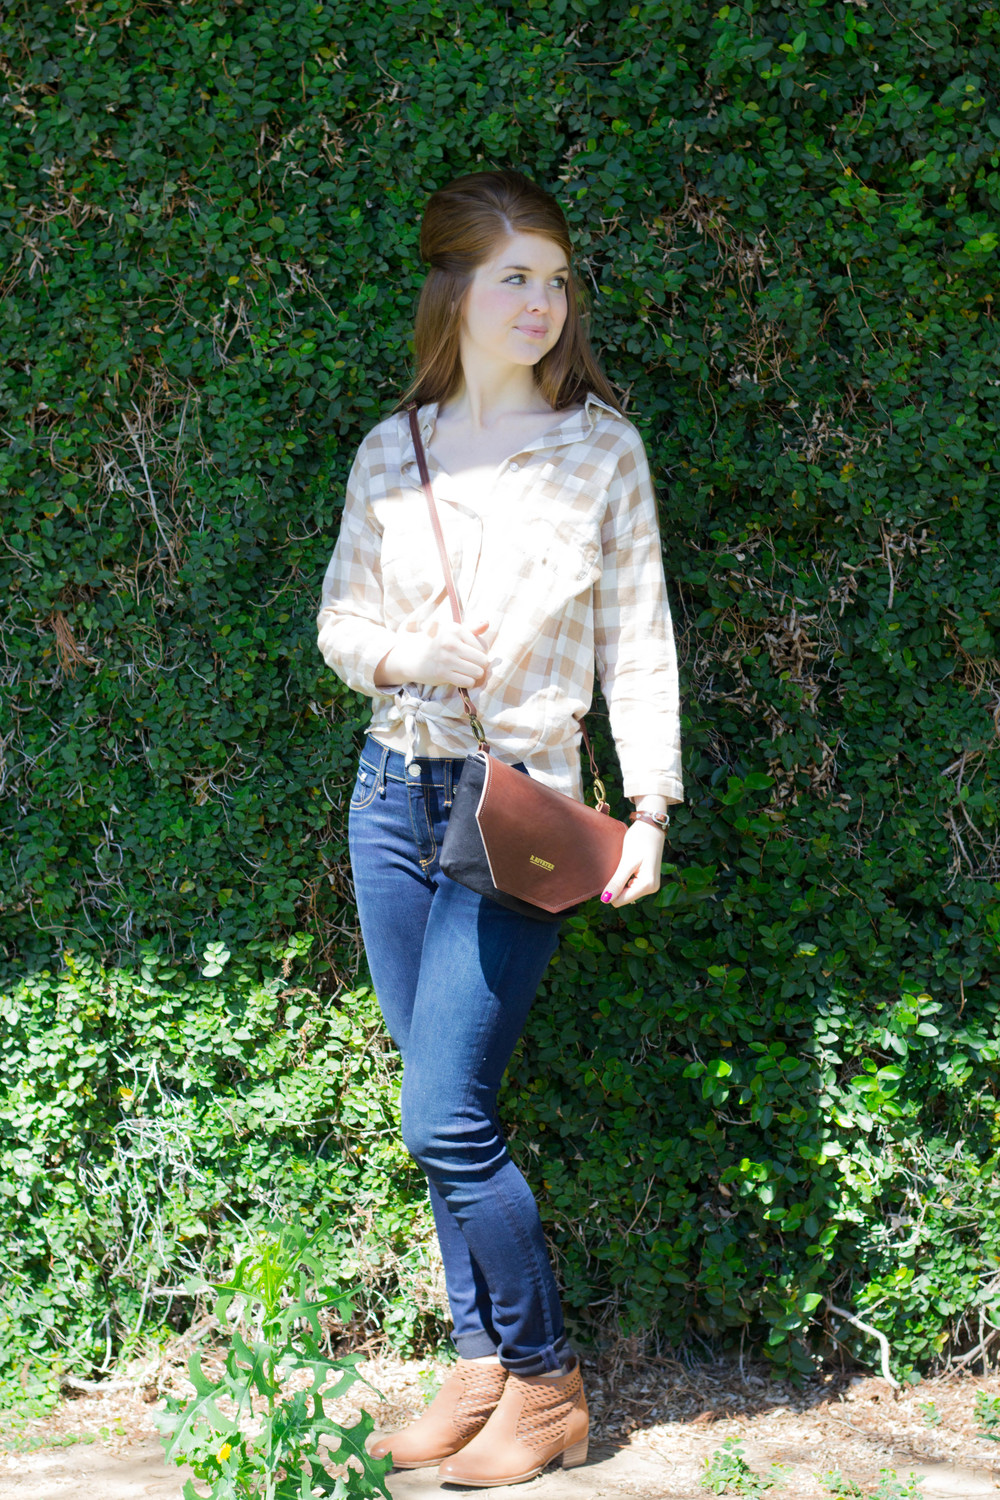 r. riveter, shark tank, purse, handbag, rag & bone jeans, ellison gingham top, leather wrap bracelet, seychelles cut out booties